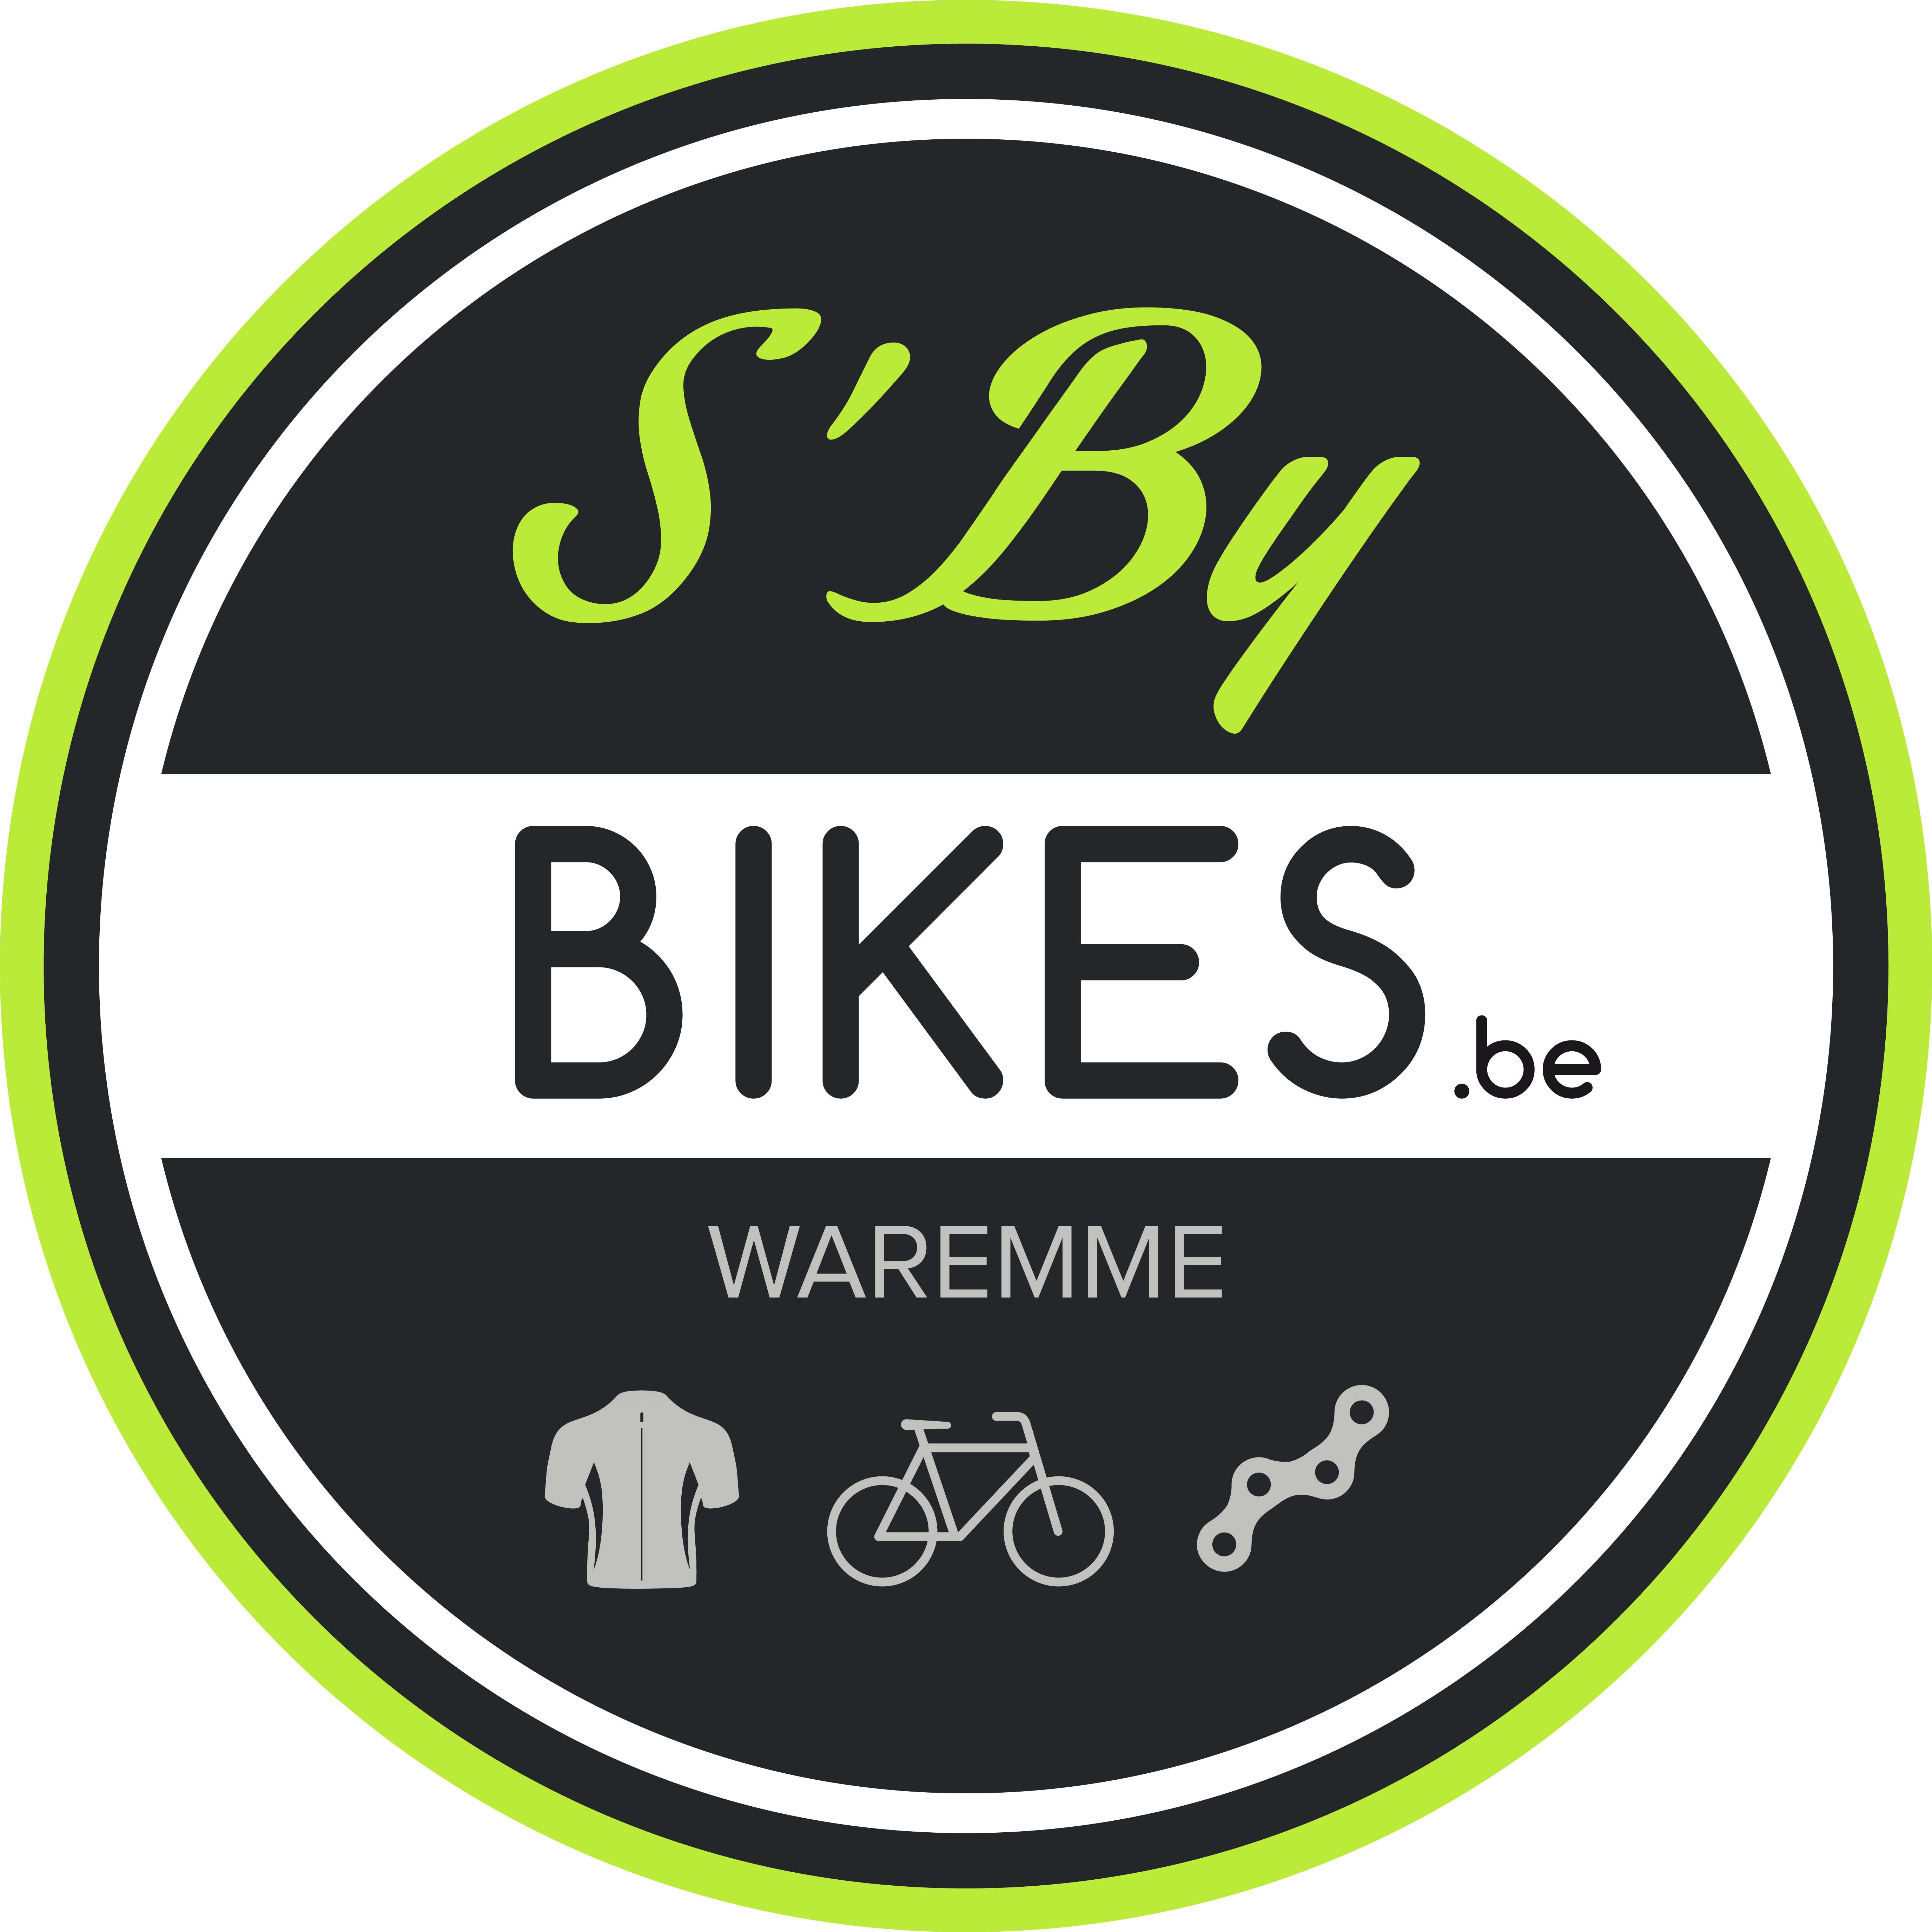 S'By Bikes